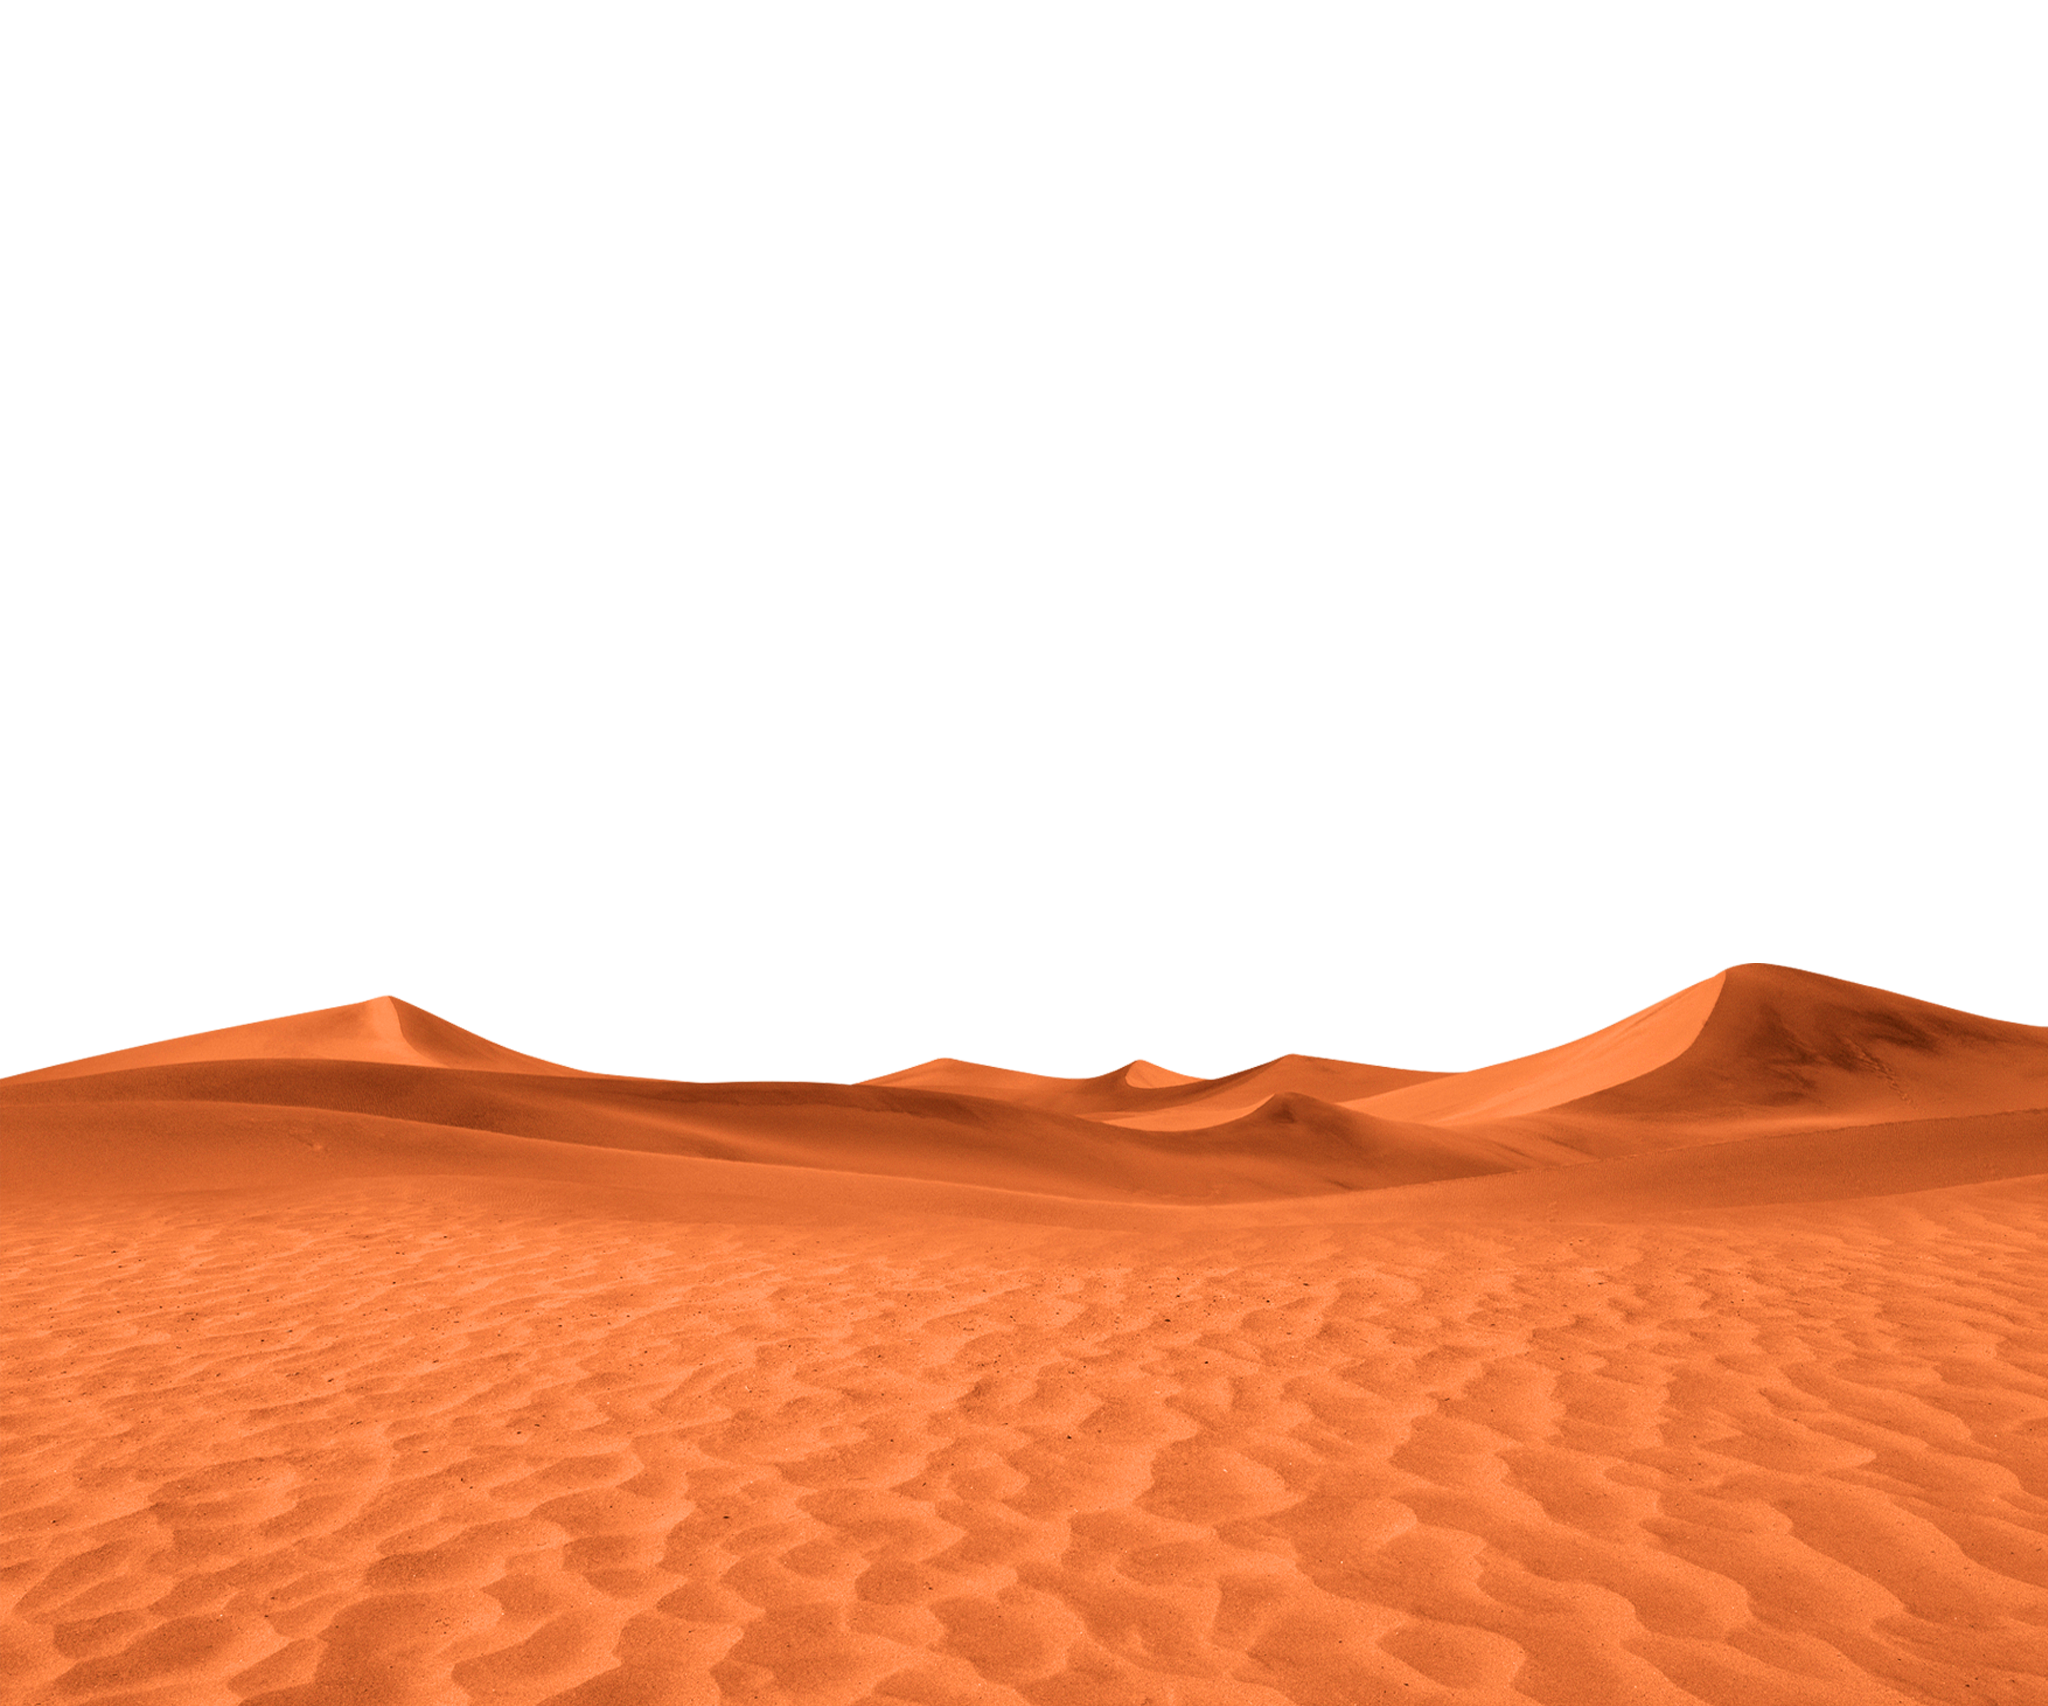 Desert PNG Pic Background.